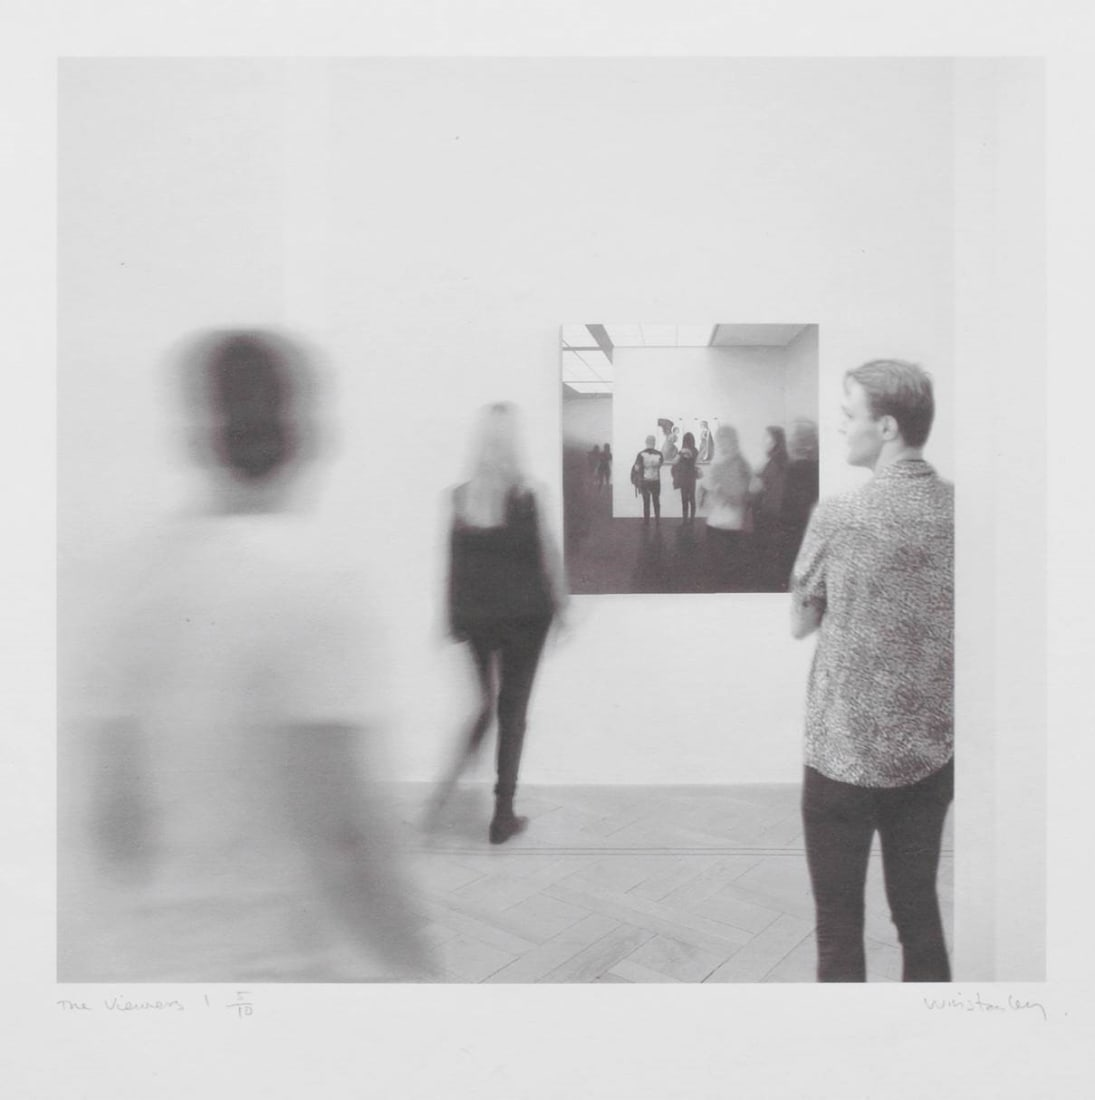 <p>Paul Winstanley; <em>The Viewers 1</em>, 2020.<br />Pigment print on Kizuki Kozo paper. Paper  66 x 62 cm, image 39 x 41.5 cm. Edition of 10.</p>